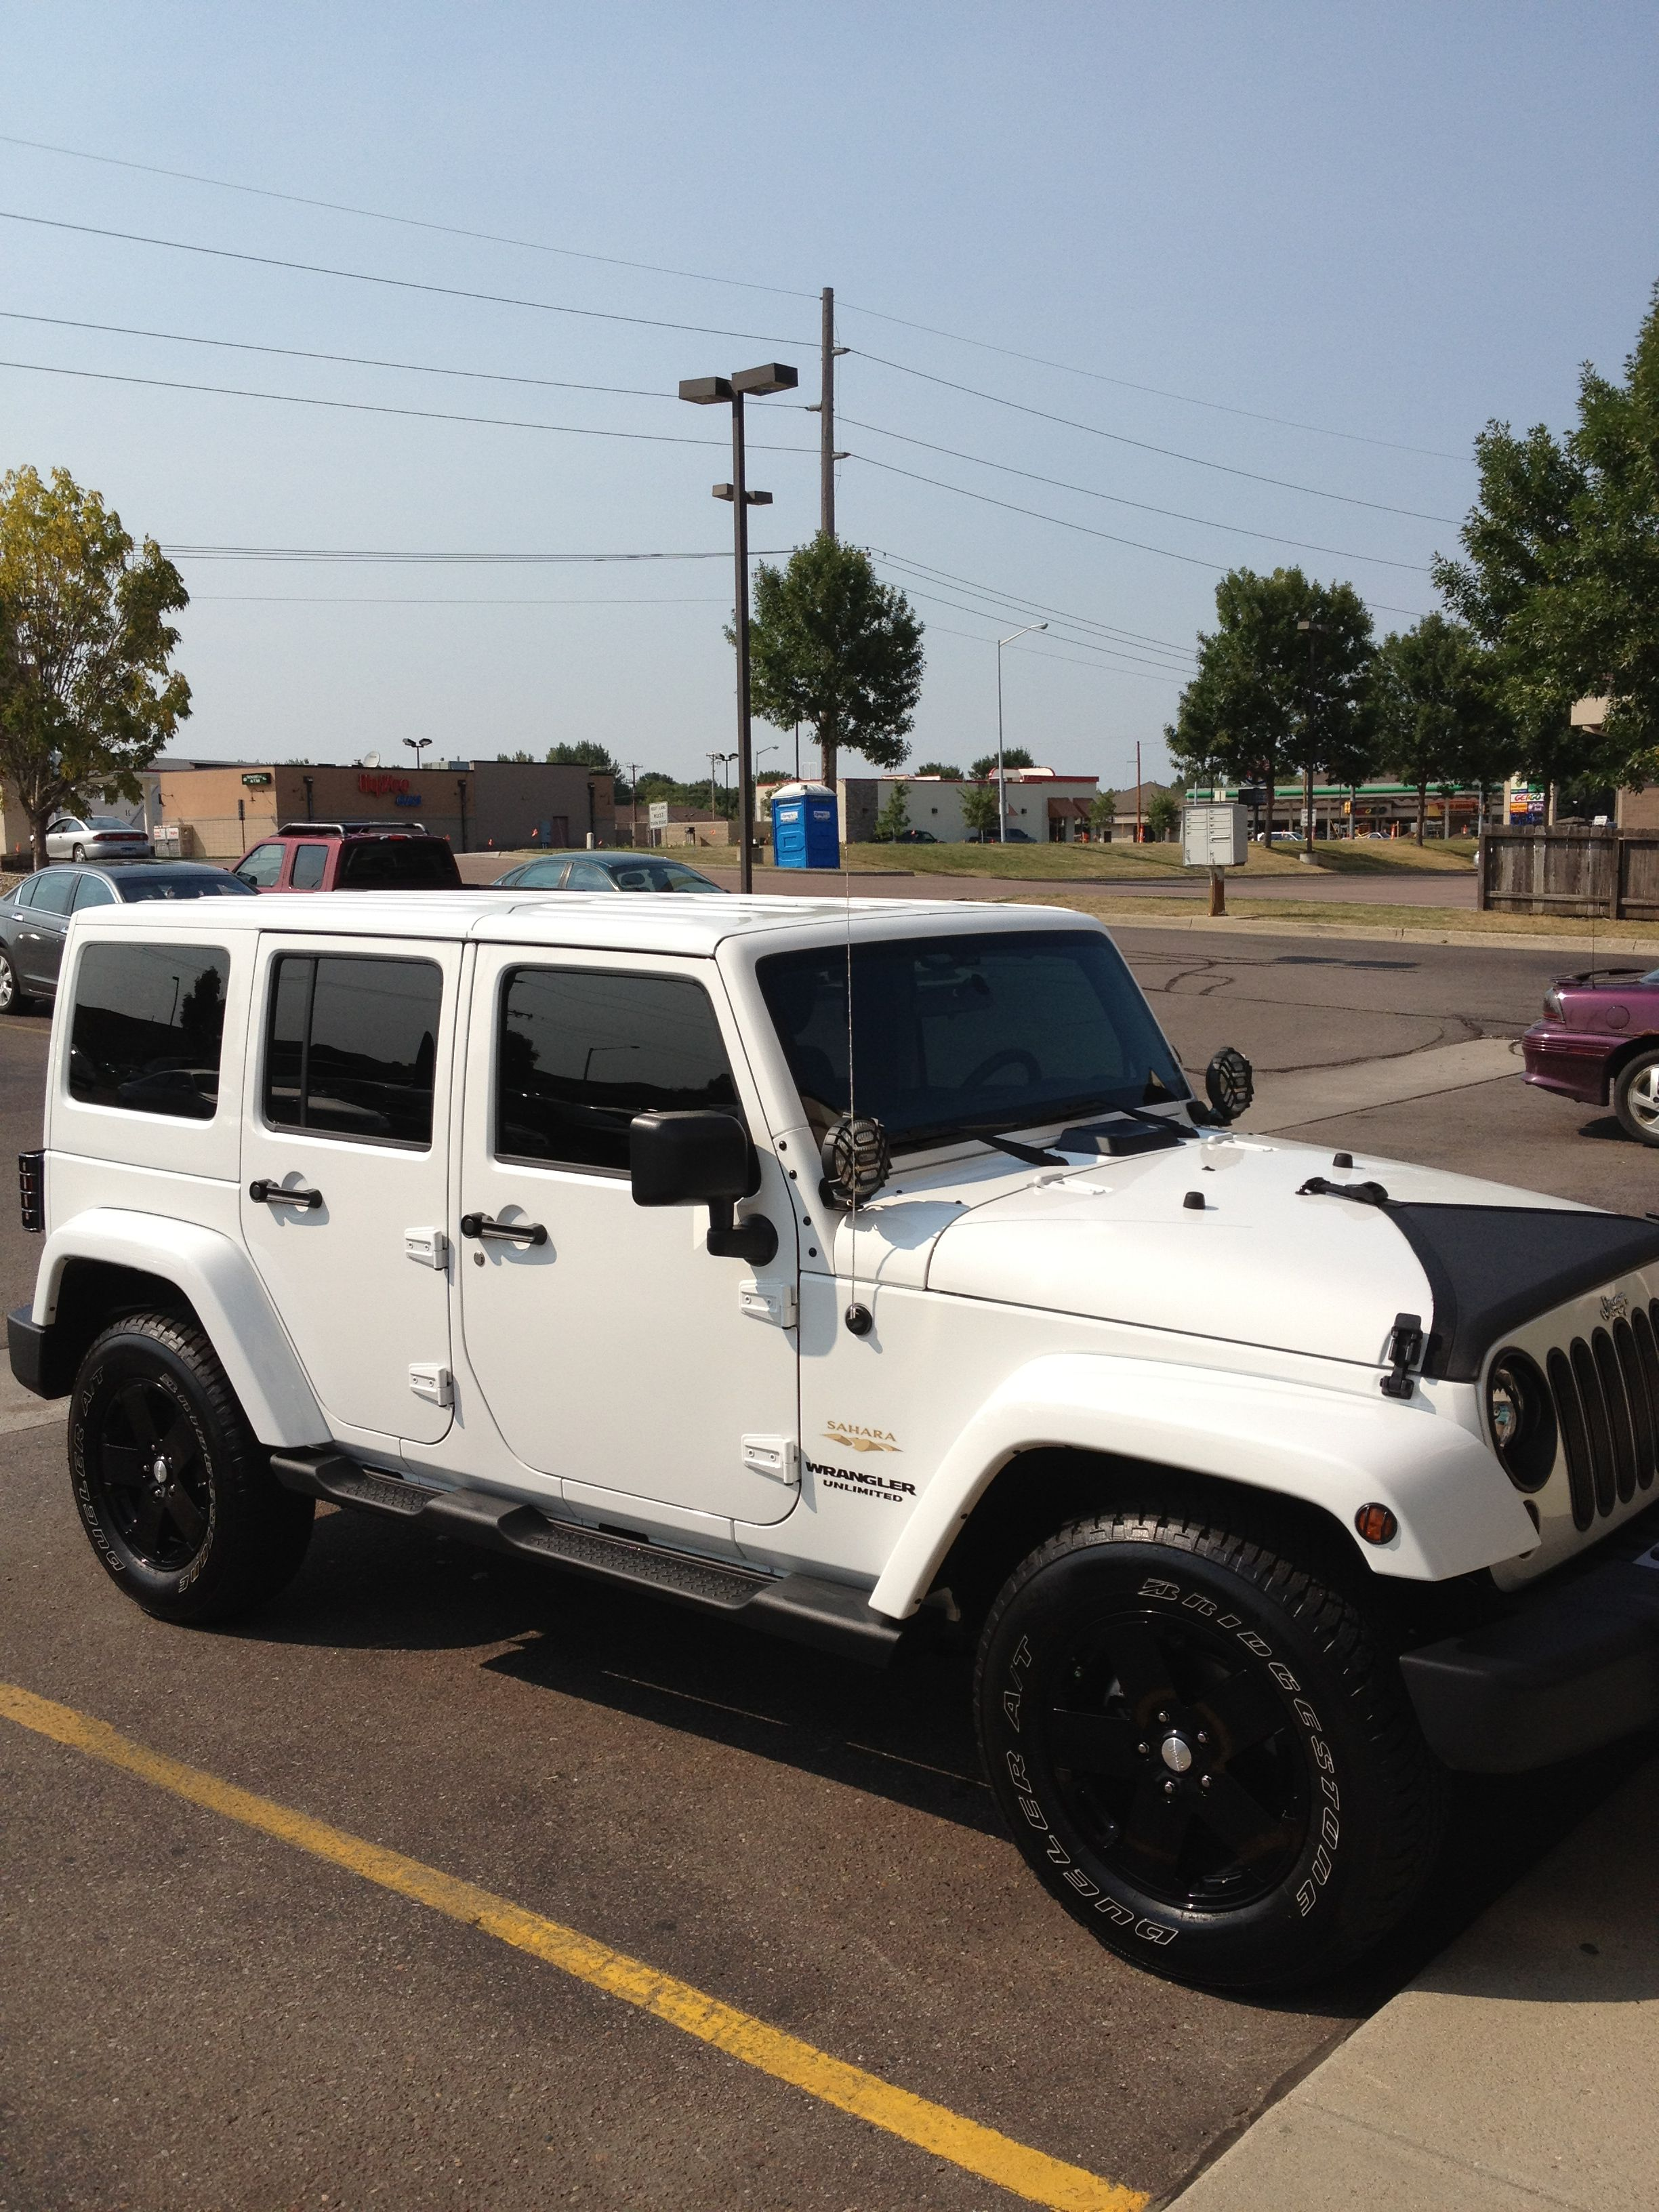 2012 Jeep Wrangler Unlimited Sahara Black On White 2012 Jeep Wrangler Jeep Wrangler Jeep Wrangler Unlimited